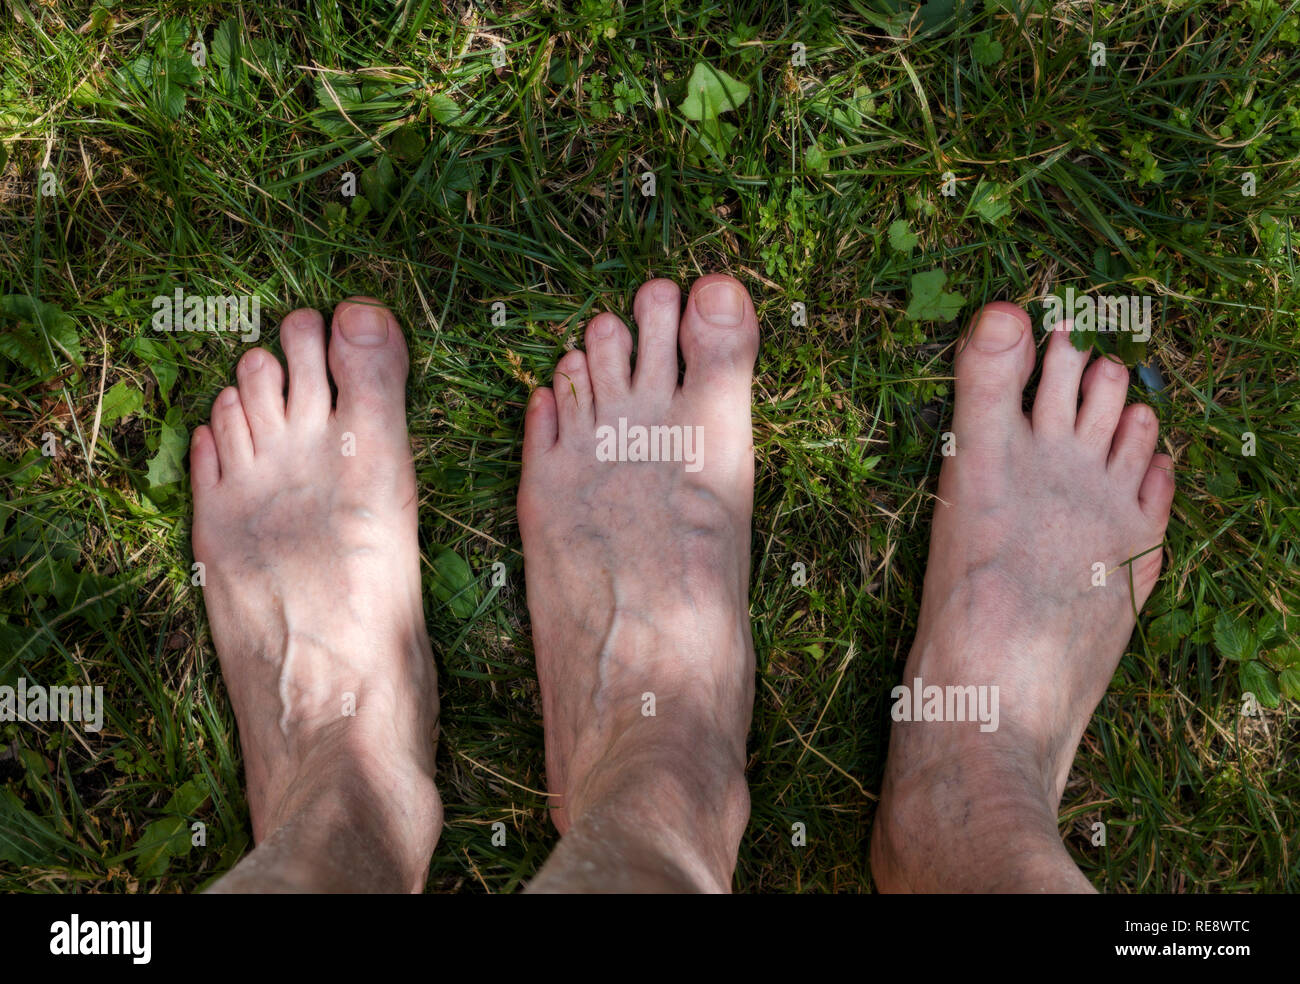 male adult funny feet on green grass - Stock Image